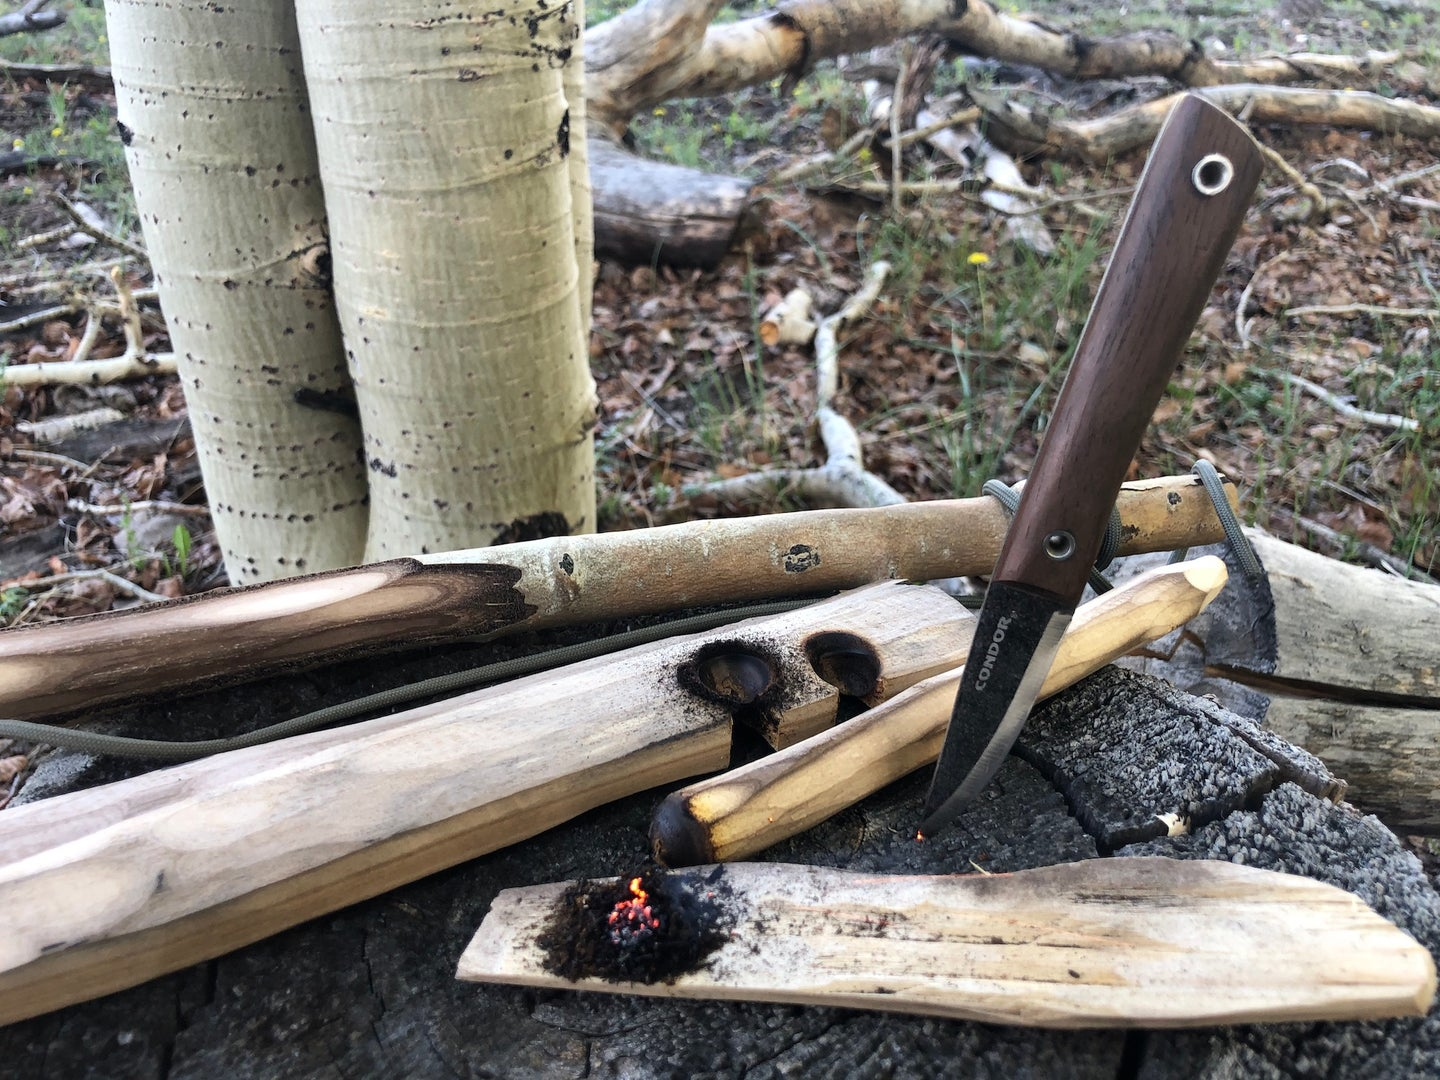 A grey knife with a wood handle stuck in a rock surrounded by pieces of light wood